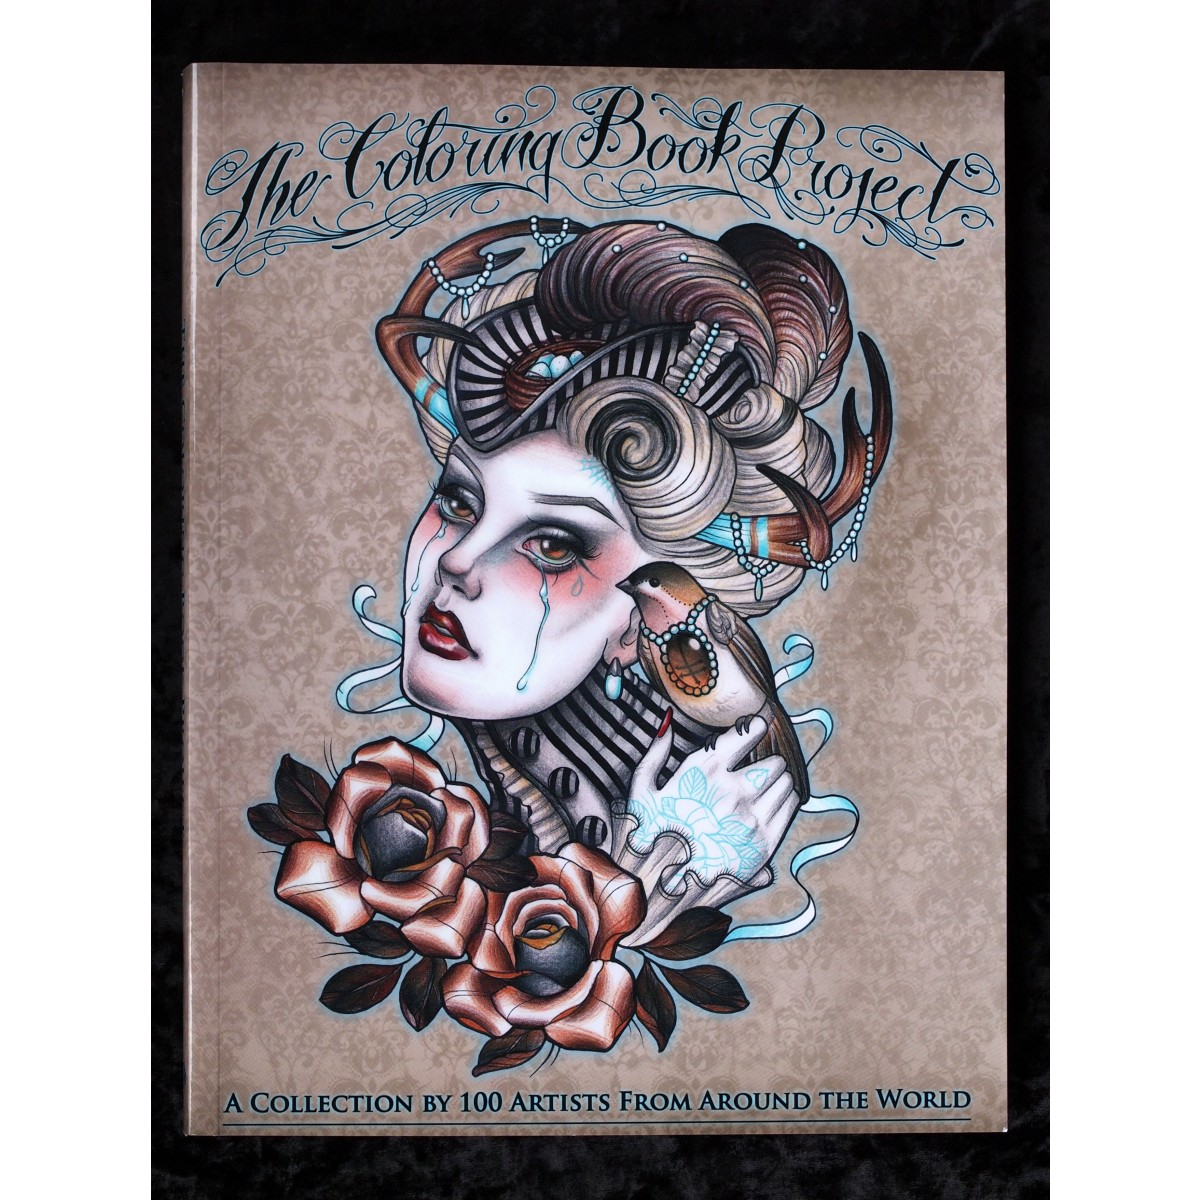 the coloring book project a collection by 100 artists from arounf